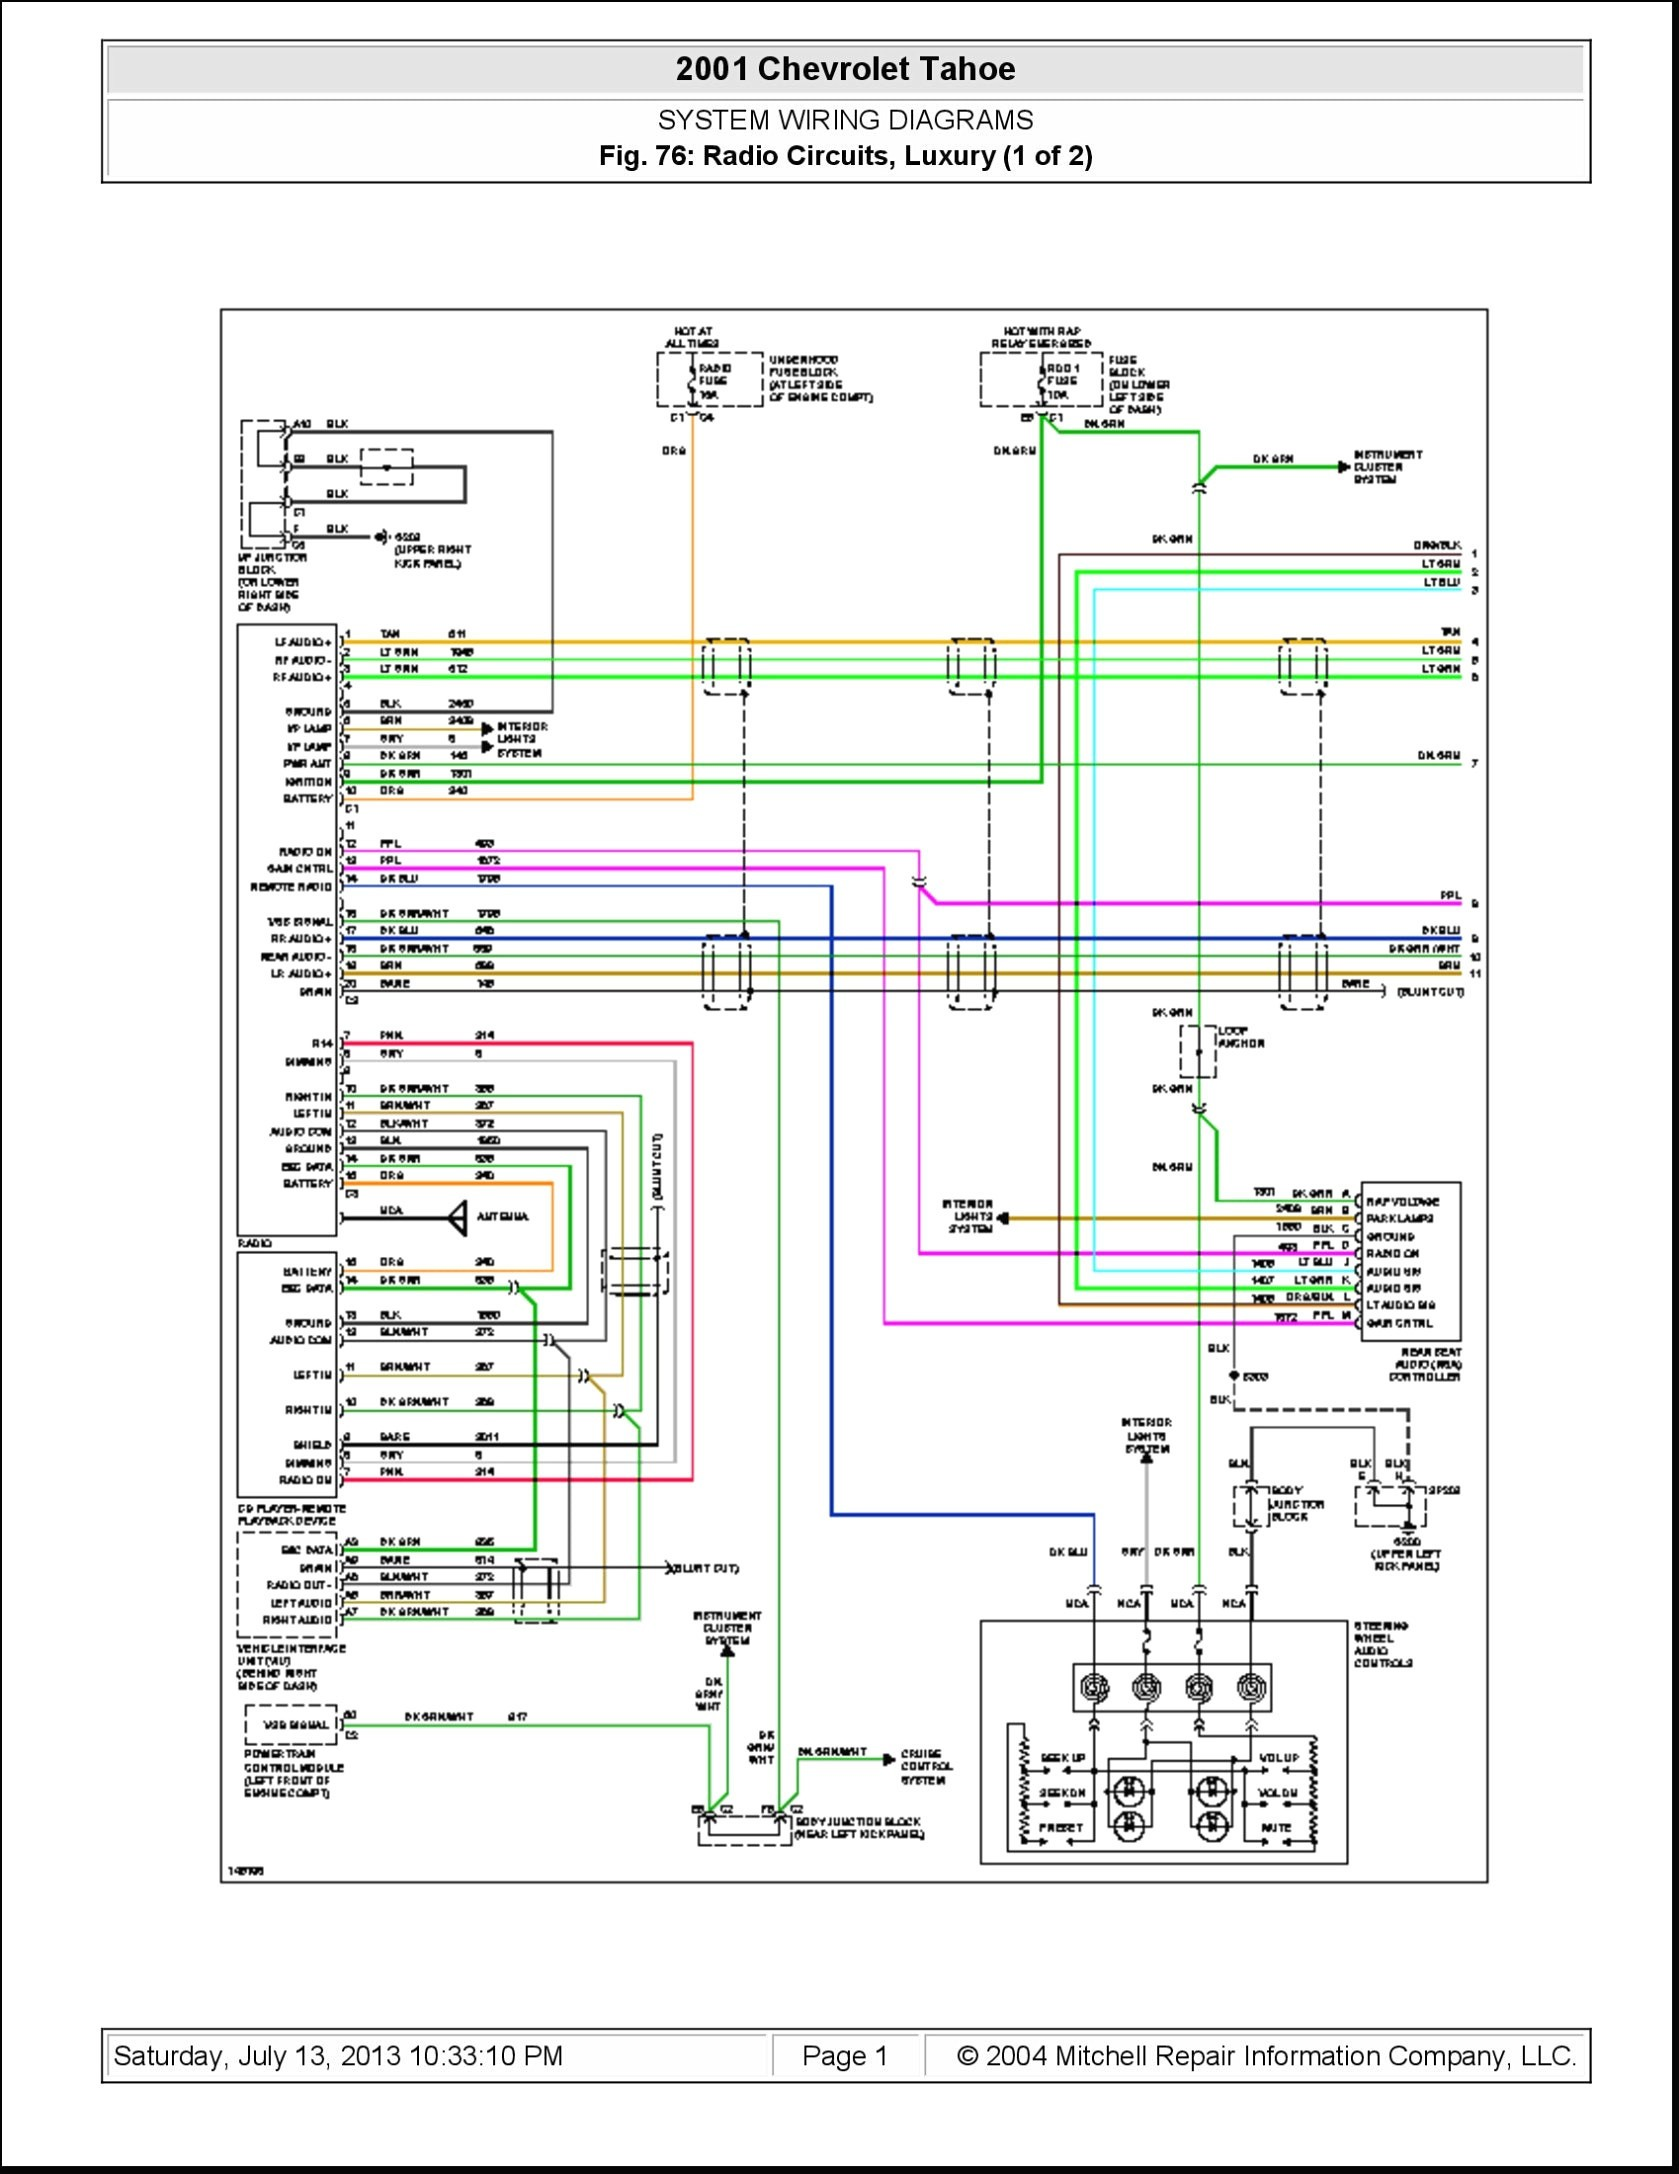 2006 Chevy Equinox Engine Diagram Seat Heater Wiring 2005 Equinox Real Wiring Diagram • Of 2006 Chevy Equinox Engine Diagram